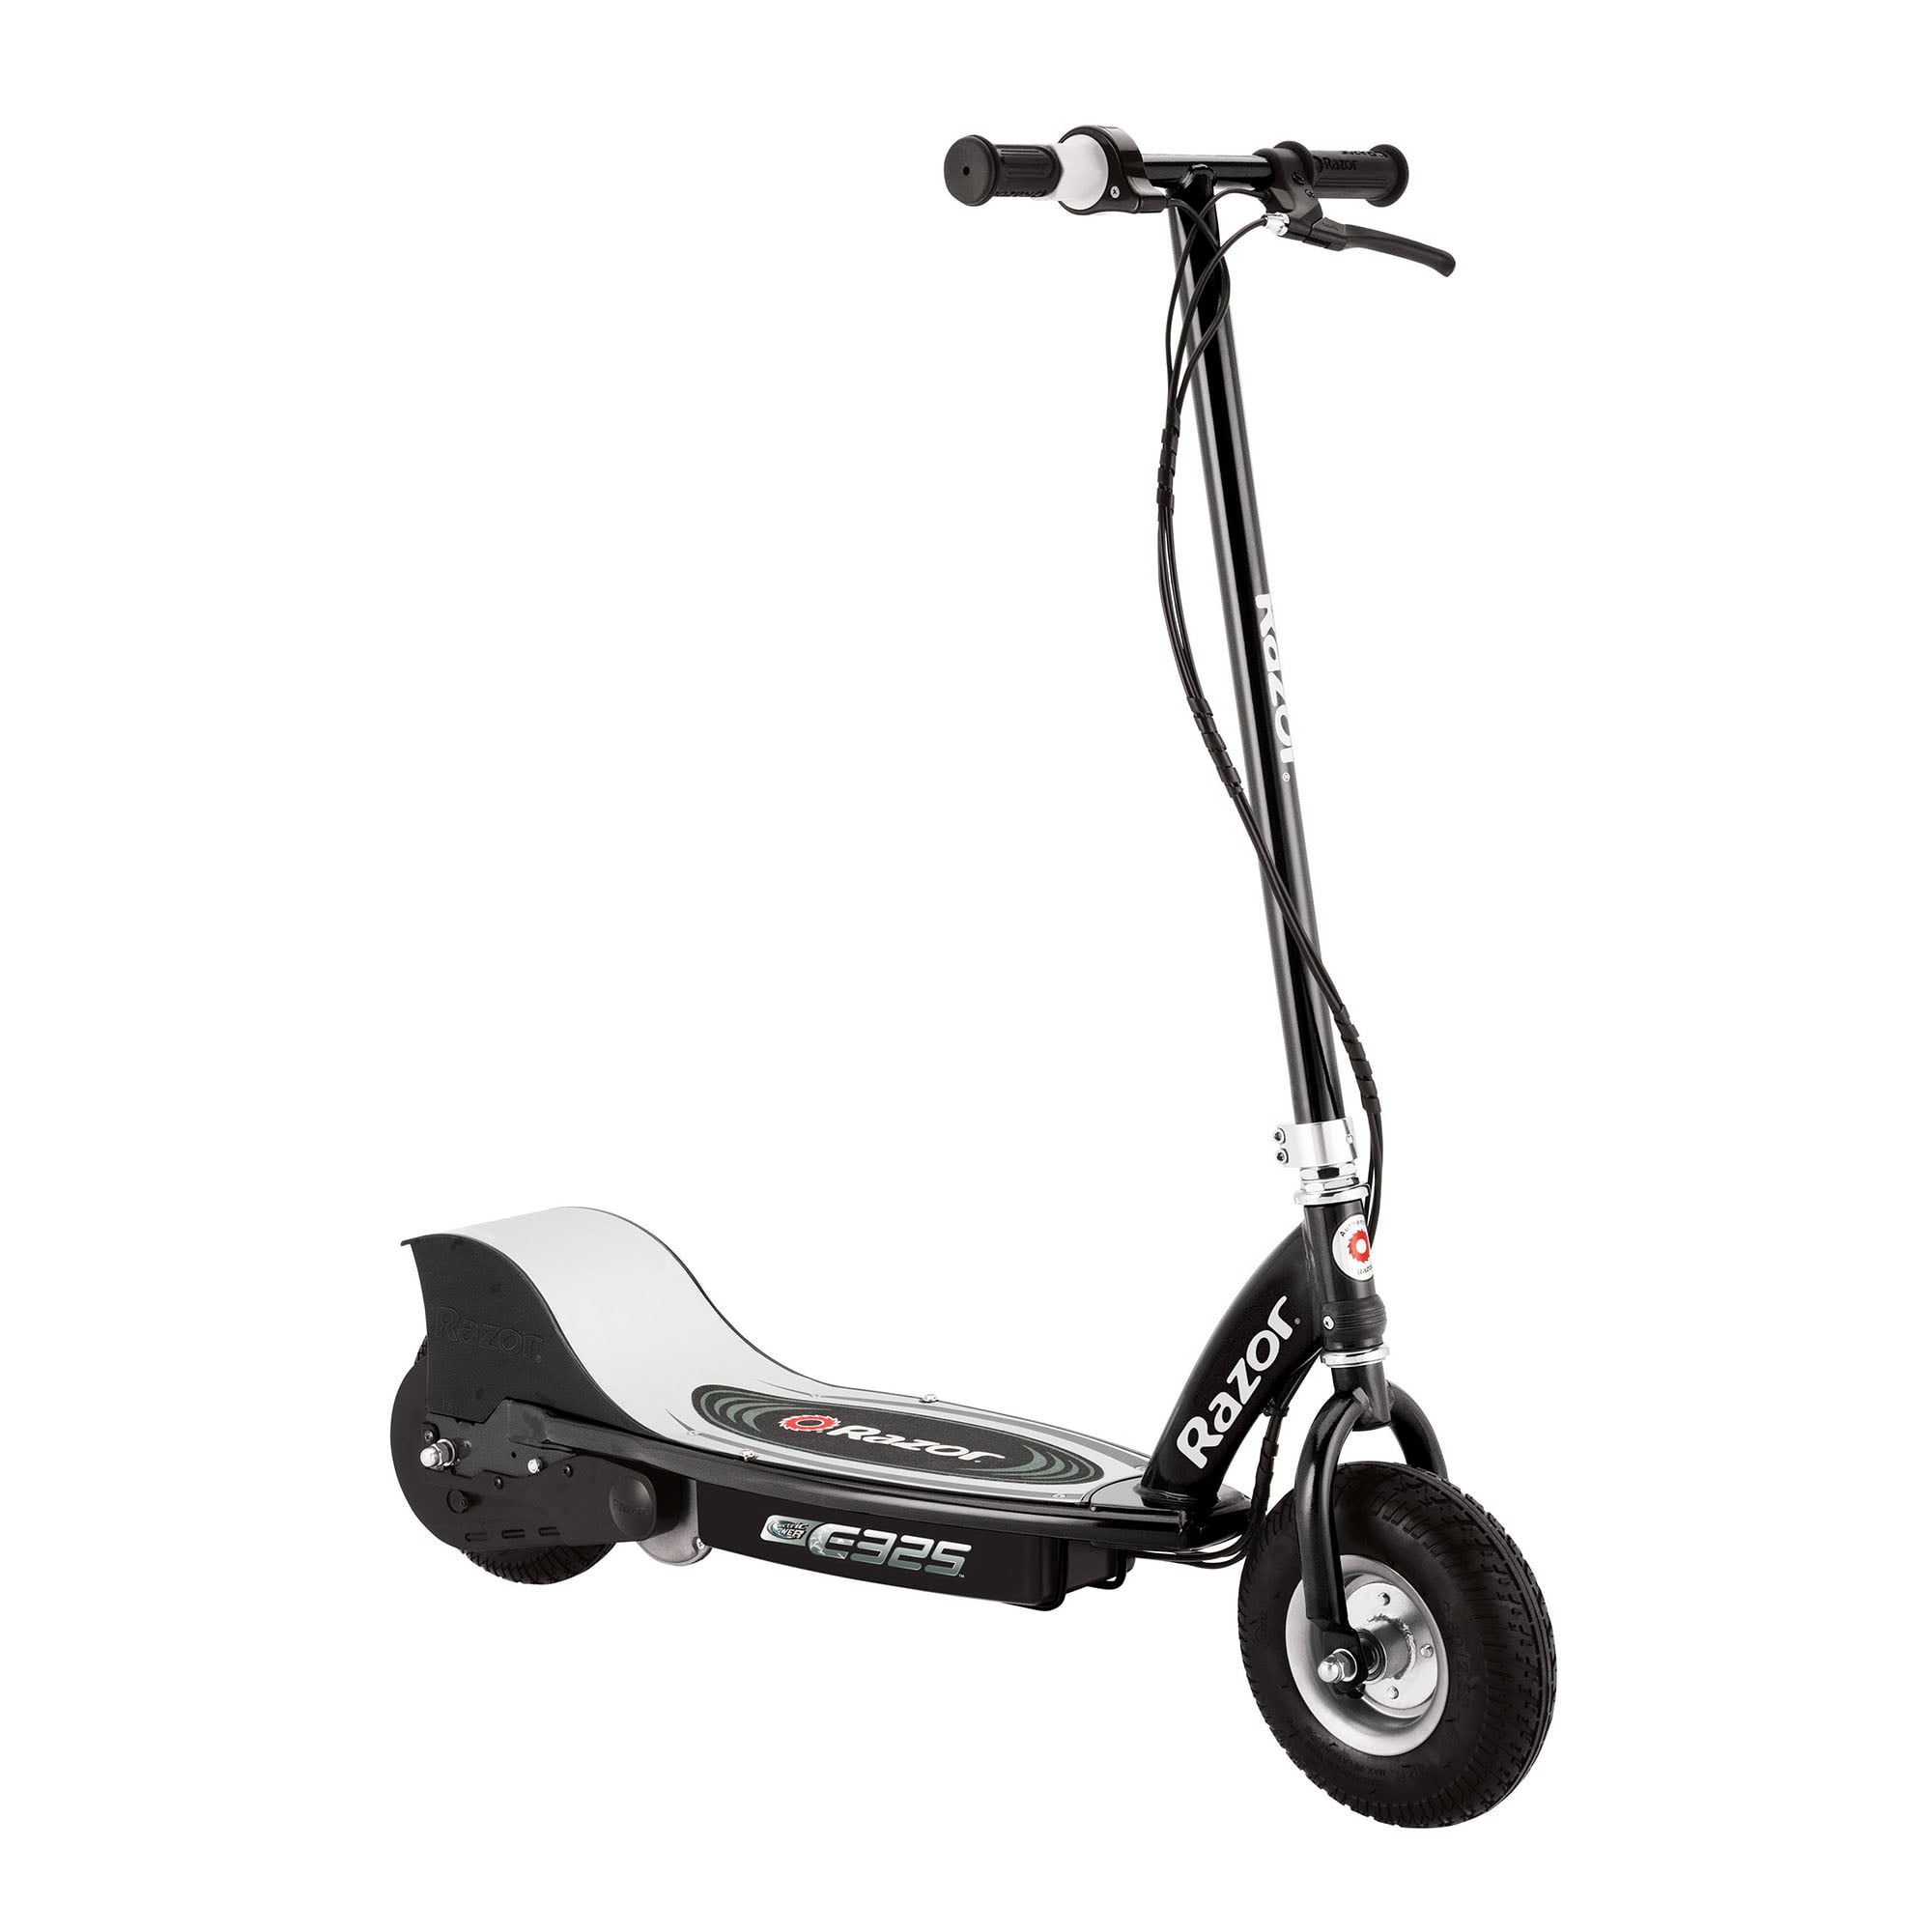 Razor E325 Electric Rechargeable 24 Volt Motorized Ride On Kids Scooter, Black by